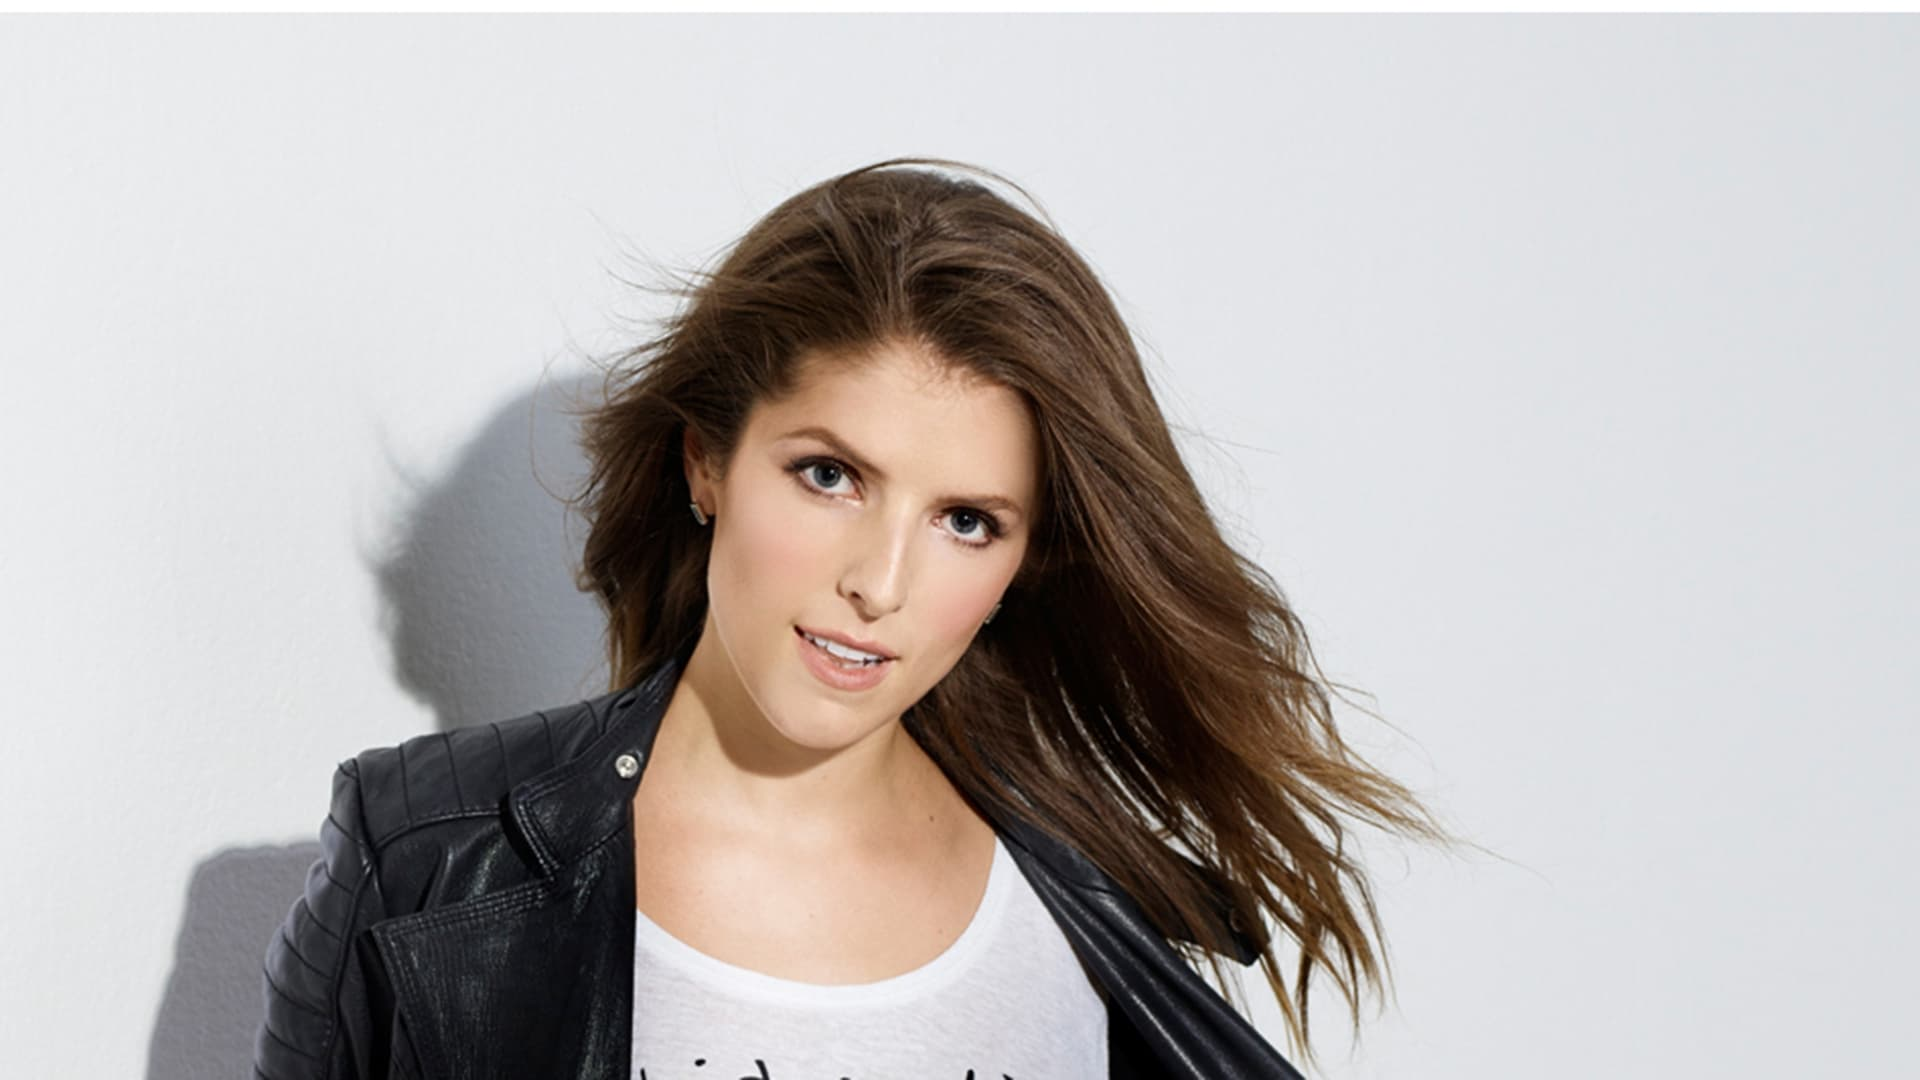 Cute Car Wallpapers Download 15 Anna Kendrick Wallpapers Hd High Quality Resolution